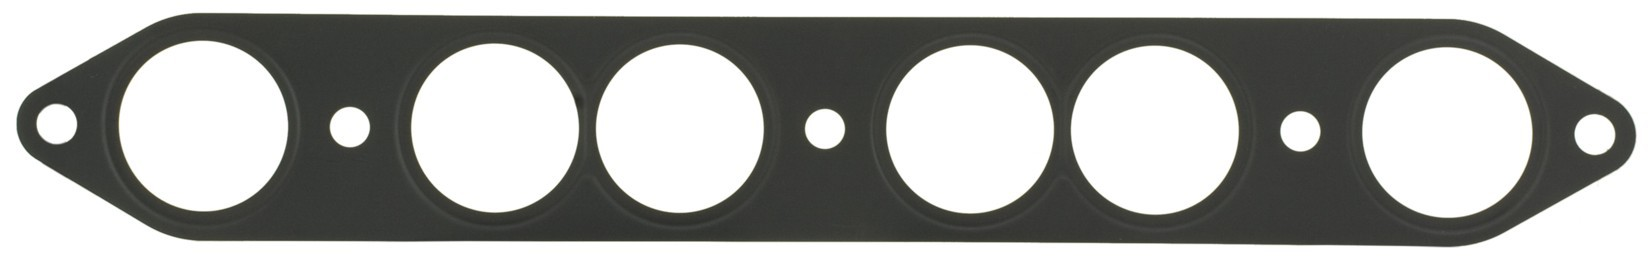 AIRTEX ENG. MGMT. SYSTEMS - Fuel Injection Plenum Gasket - AEM 1G1309